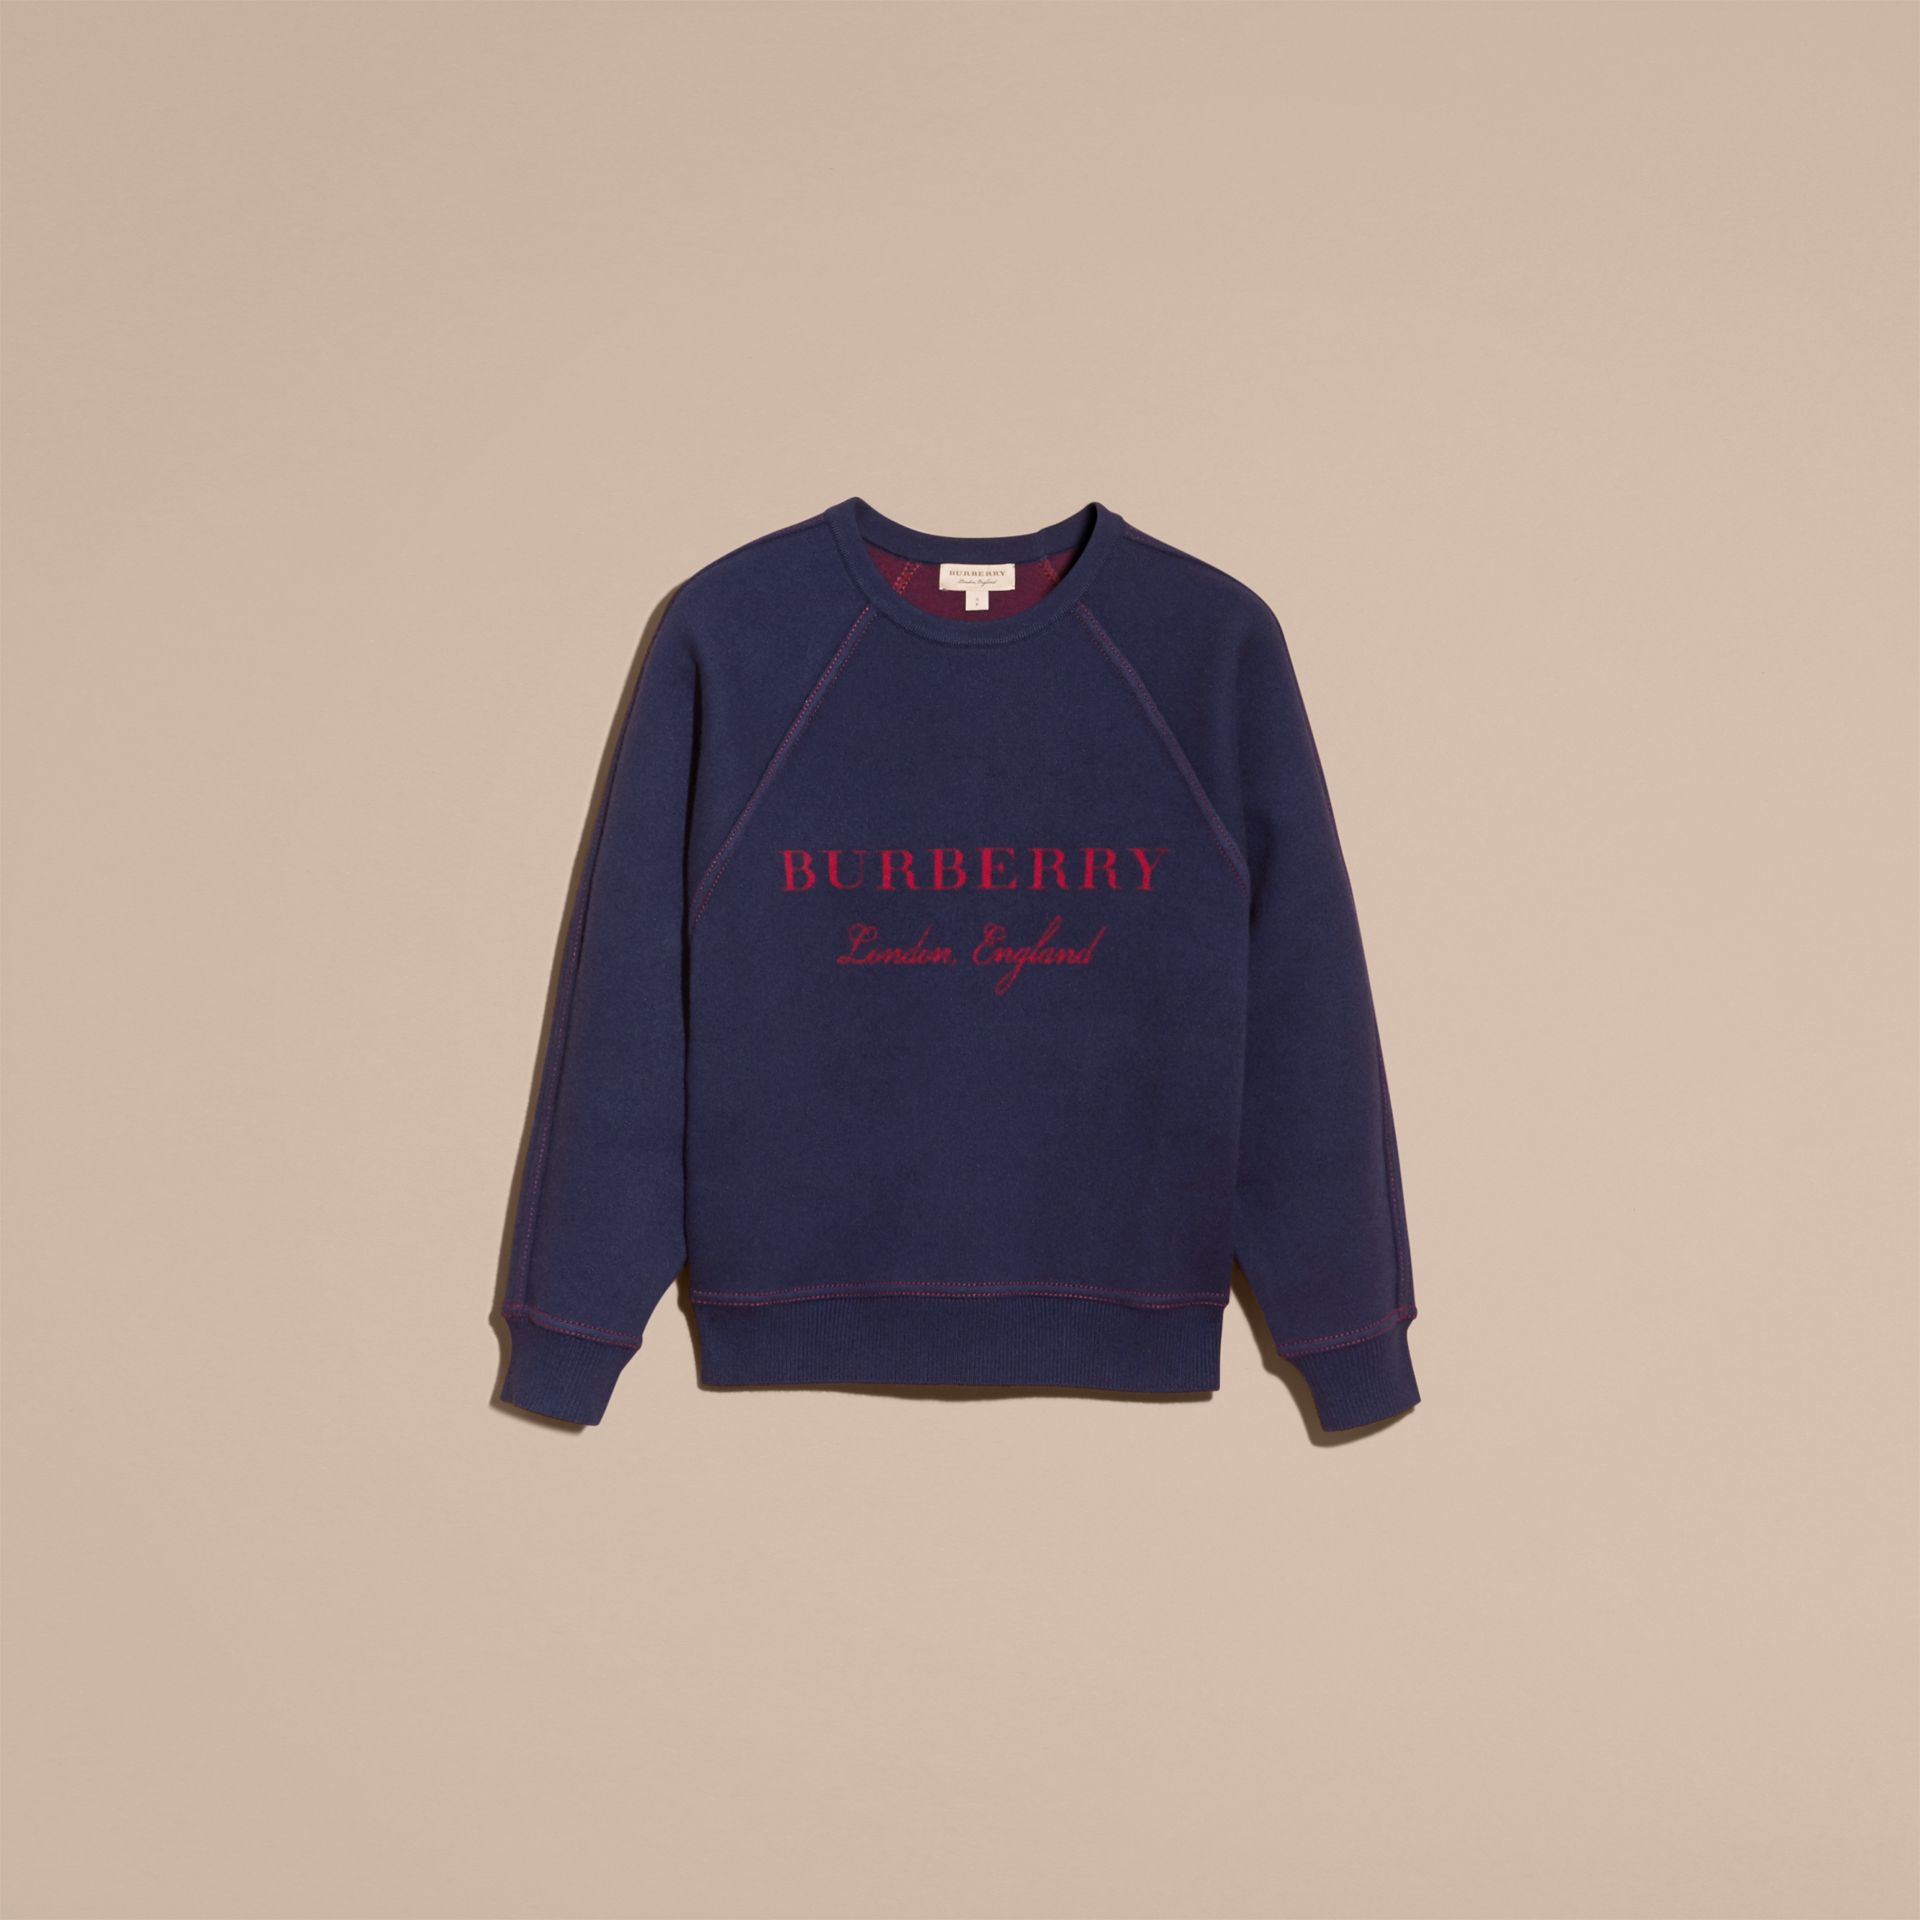 Topstitch Detail Wool Cashmere Blend Sweater in Navy - Women | Burberry Hong Kong - gallery image 4